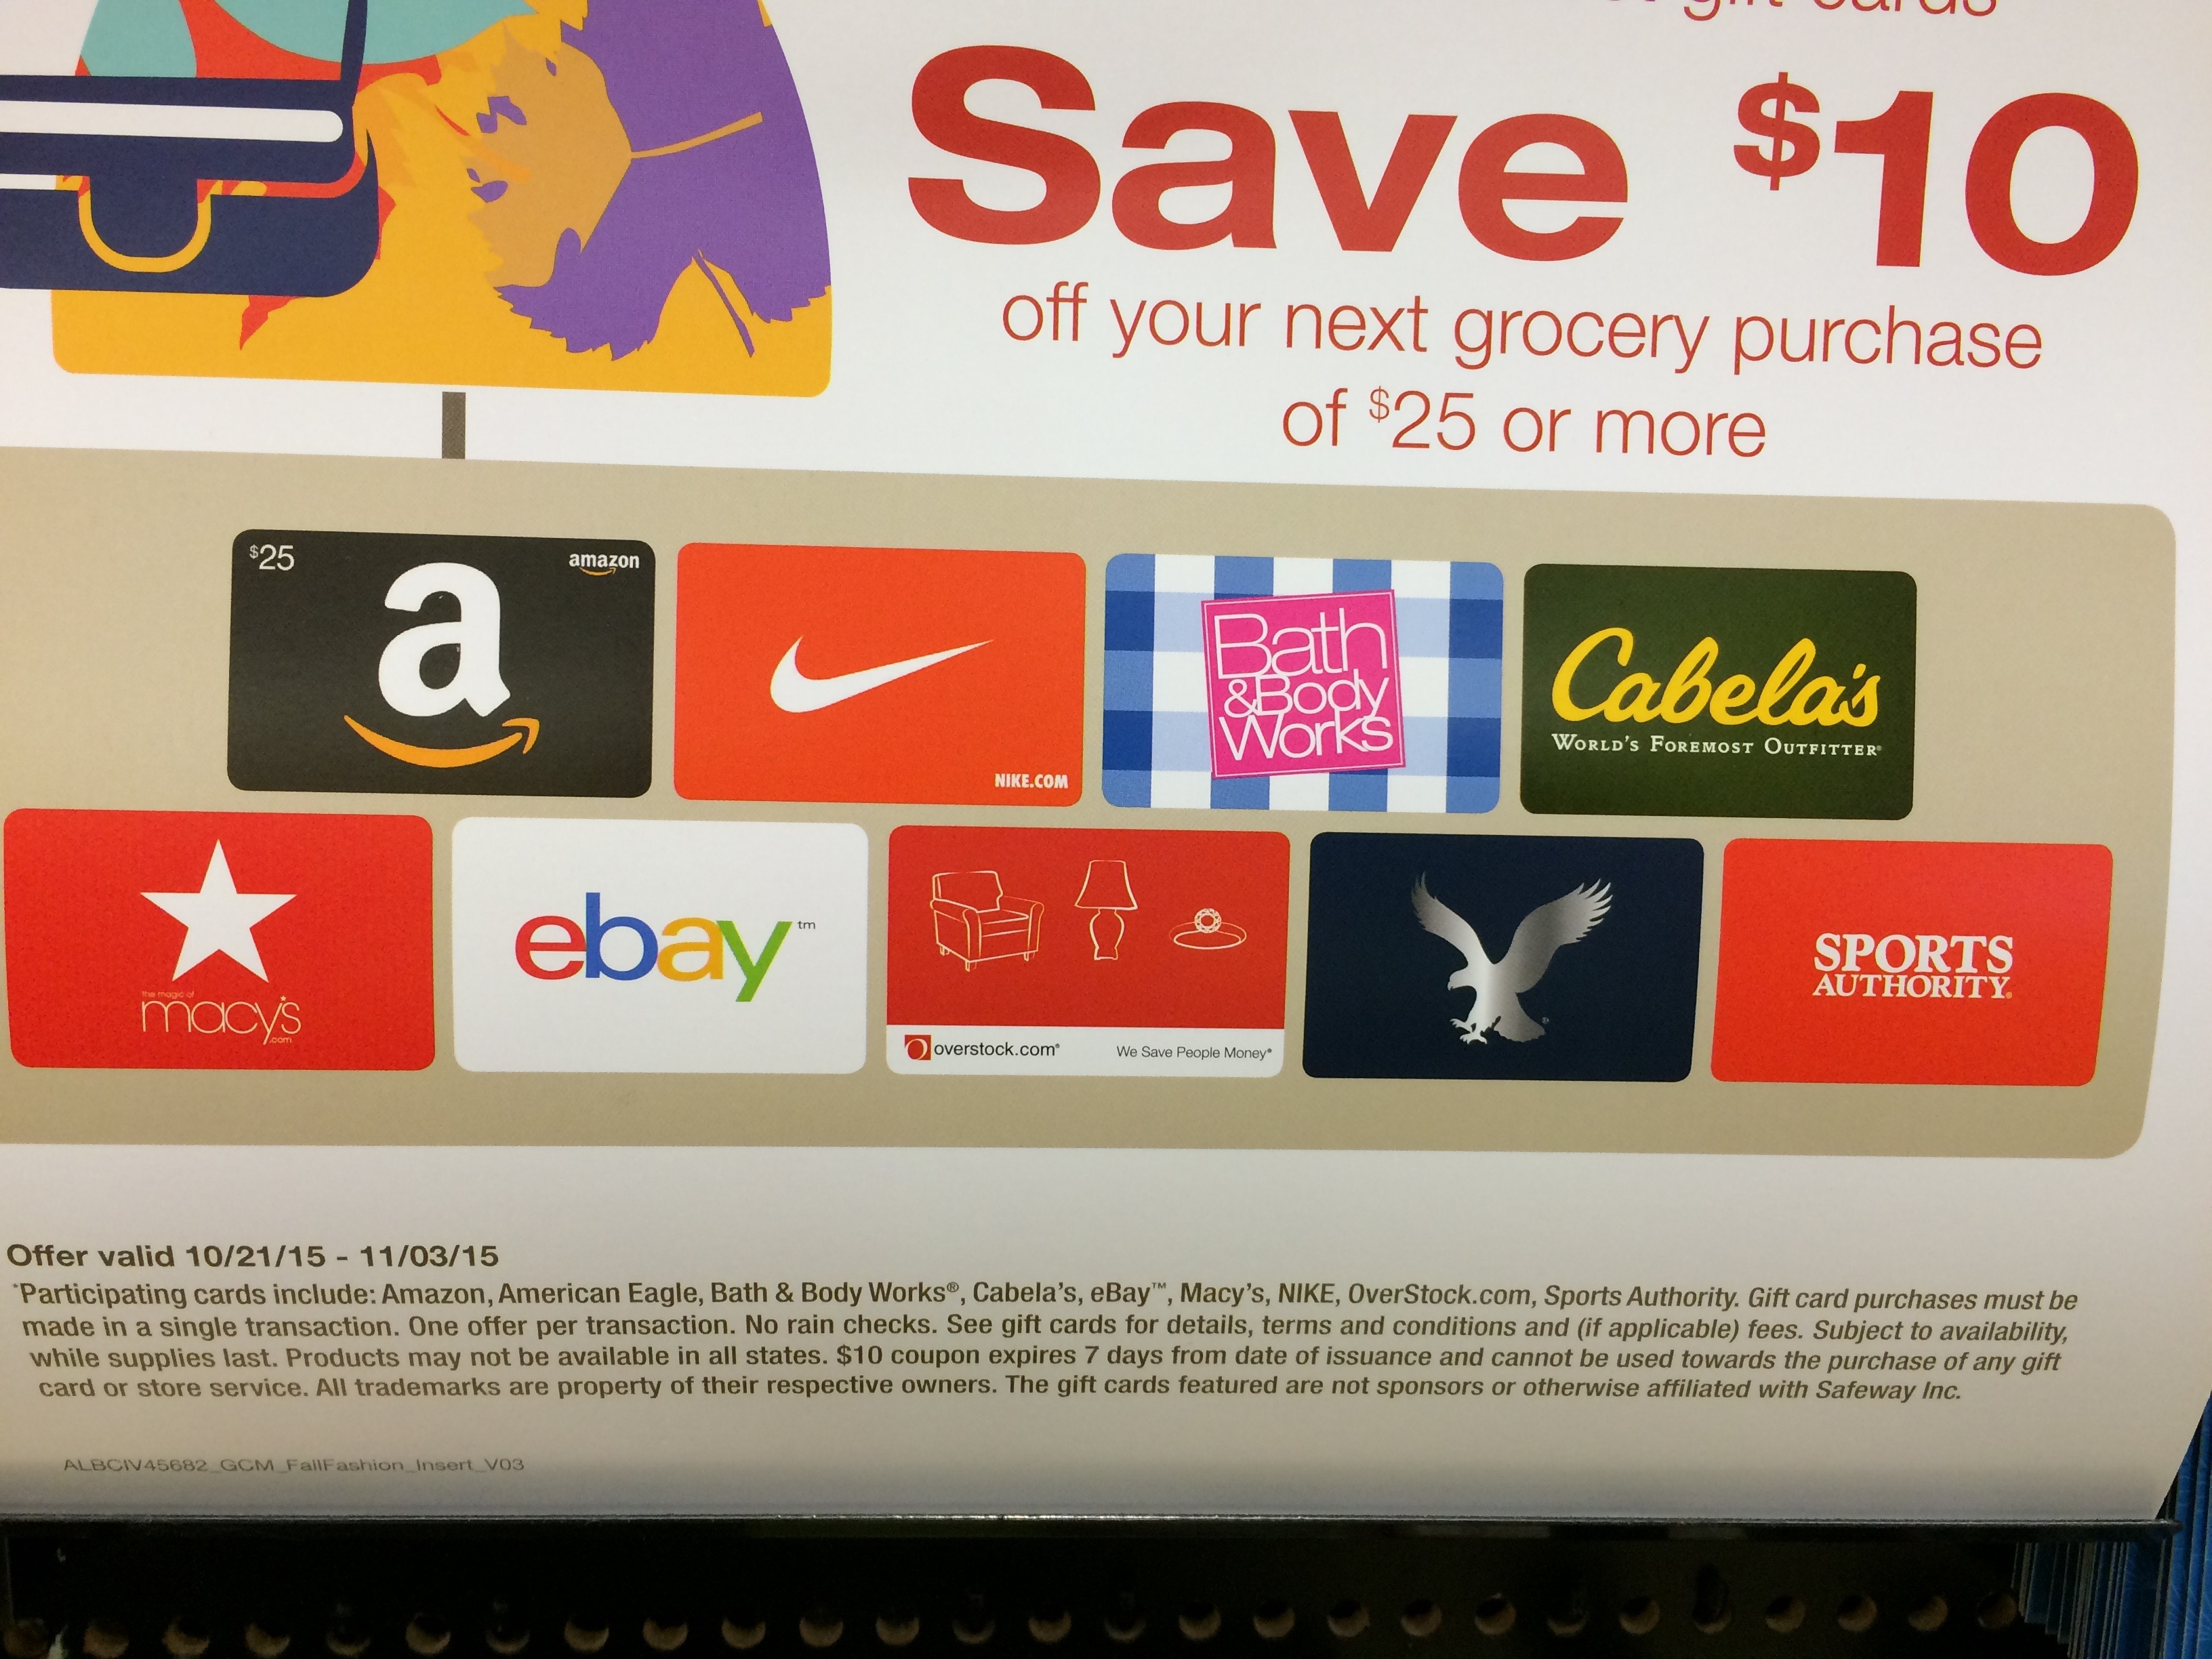 10 Rebate On 100 Ebay And Amazon Gift Cards At Safeway Fishing4deals